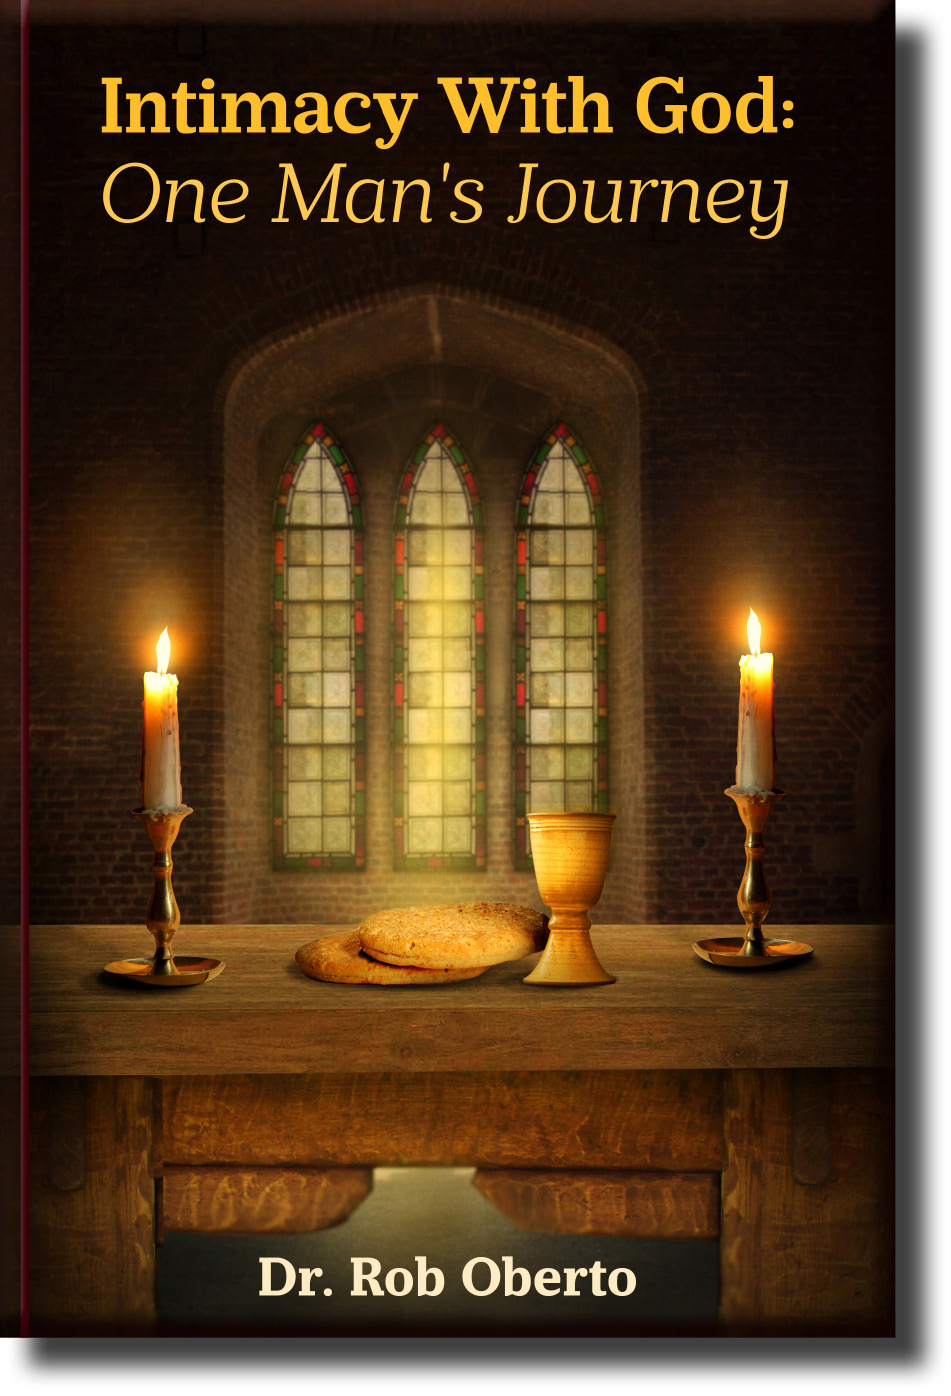 Intimacy With God book image